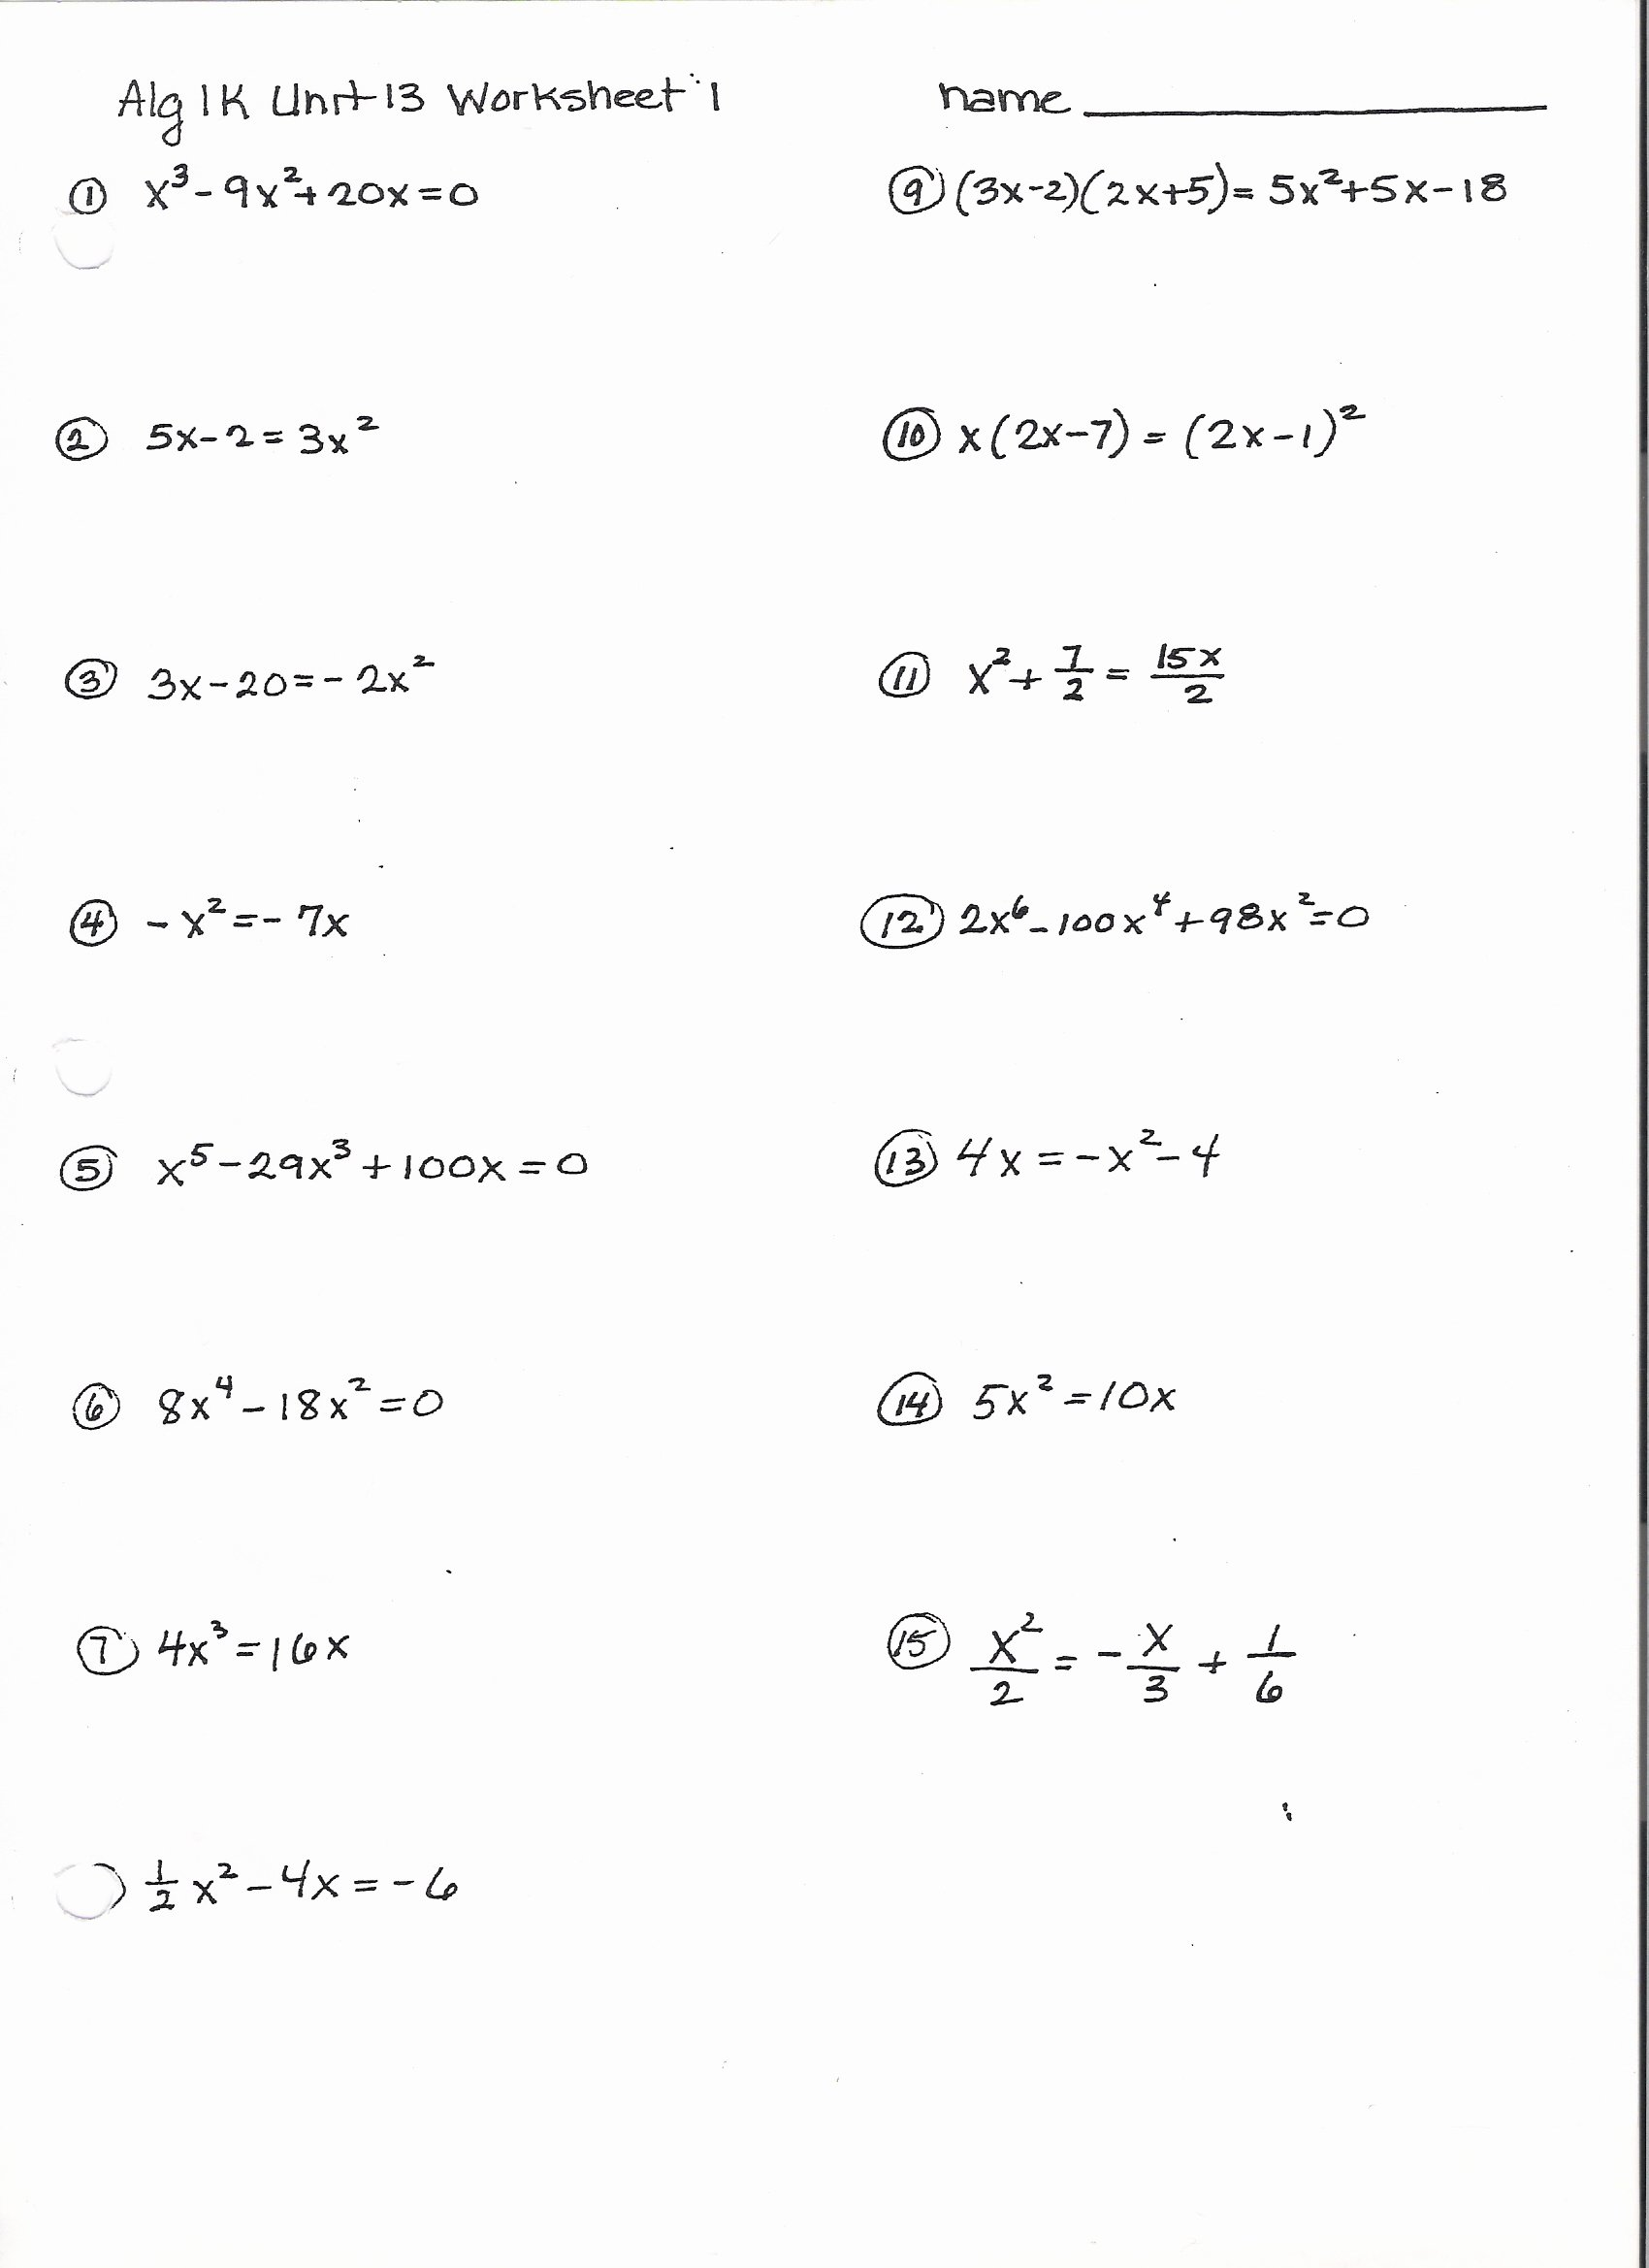 Factoring Worksheet Algebra 2 Lovely 11 Best Of Factoring Worksheets Algebra Ii